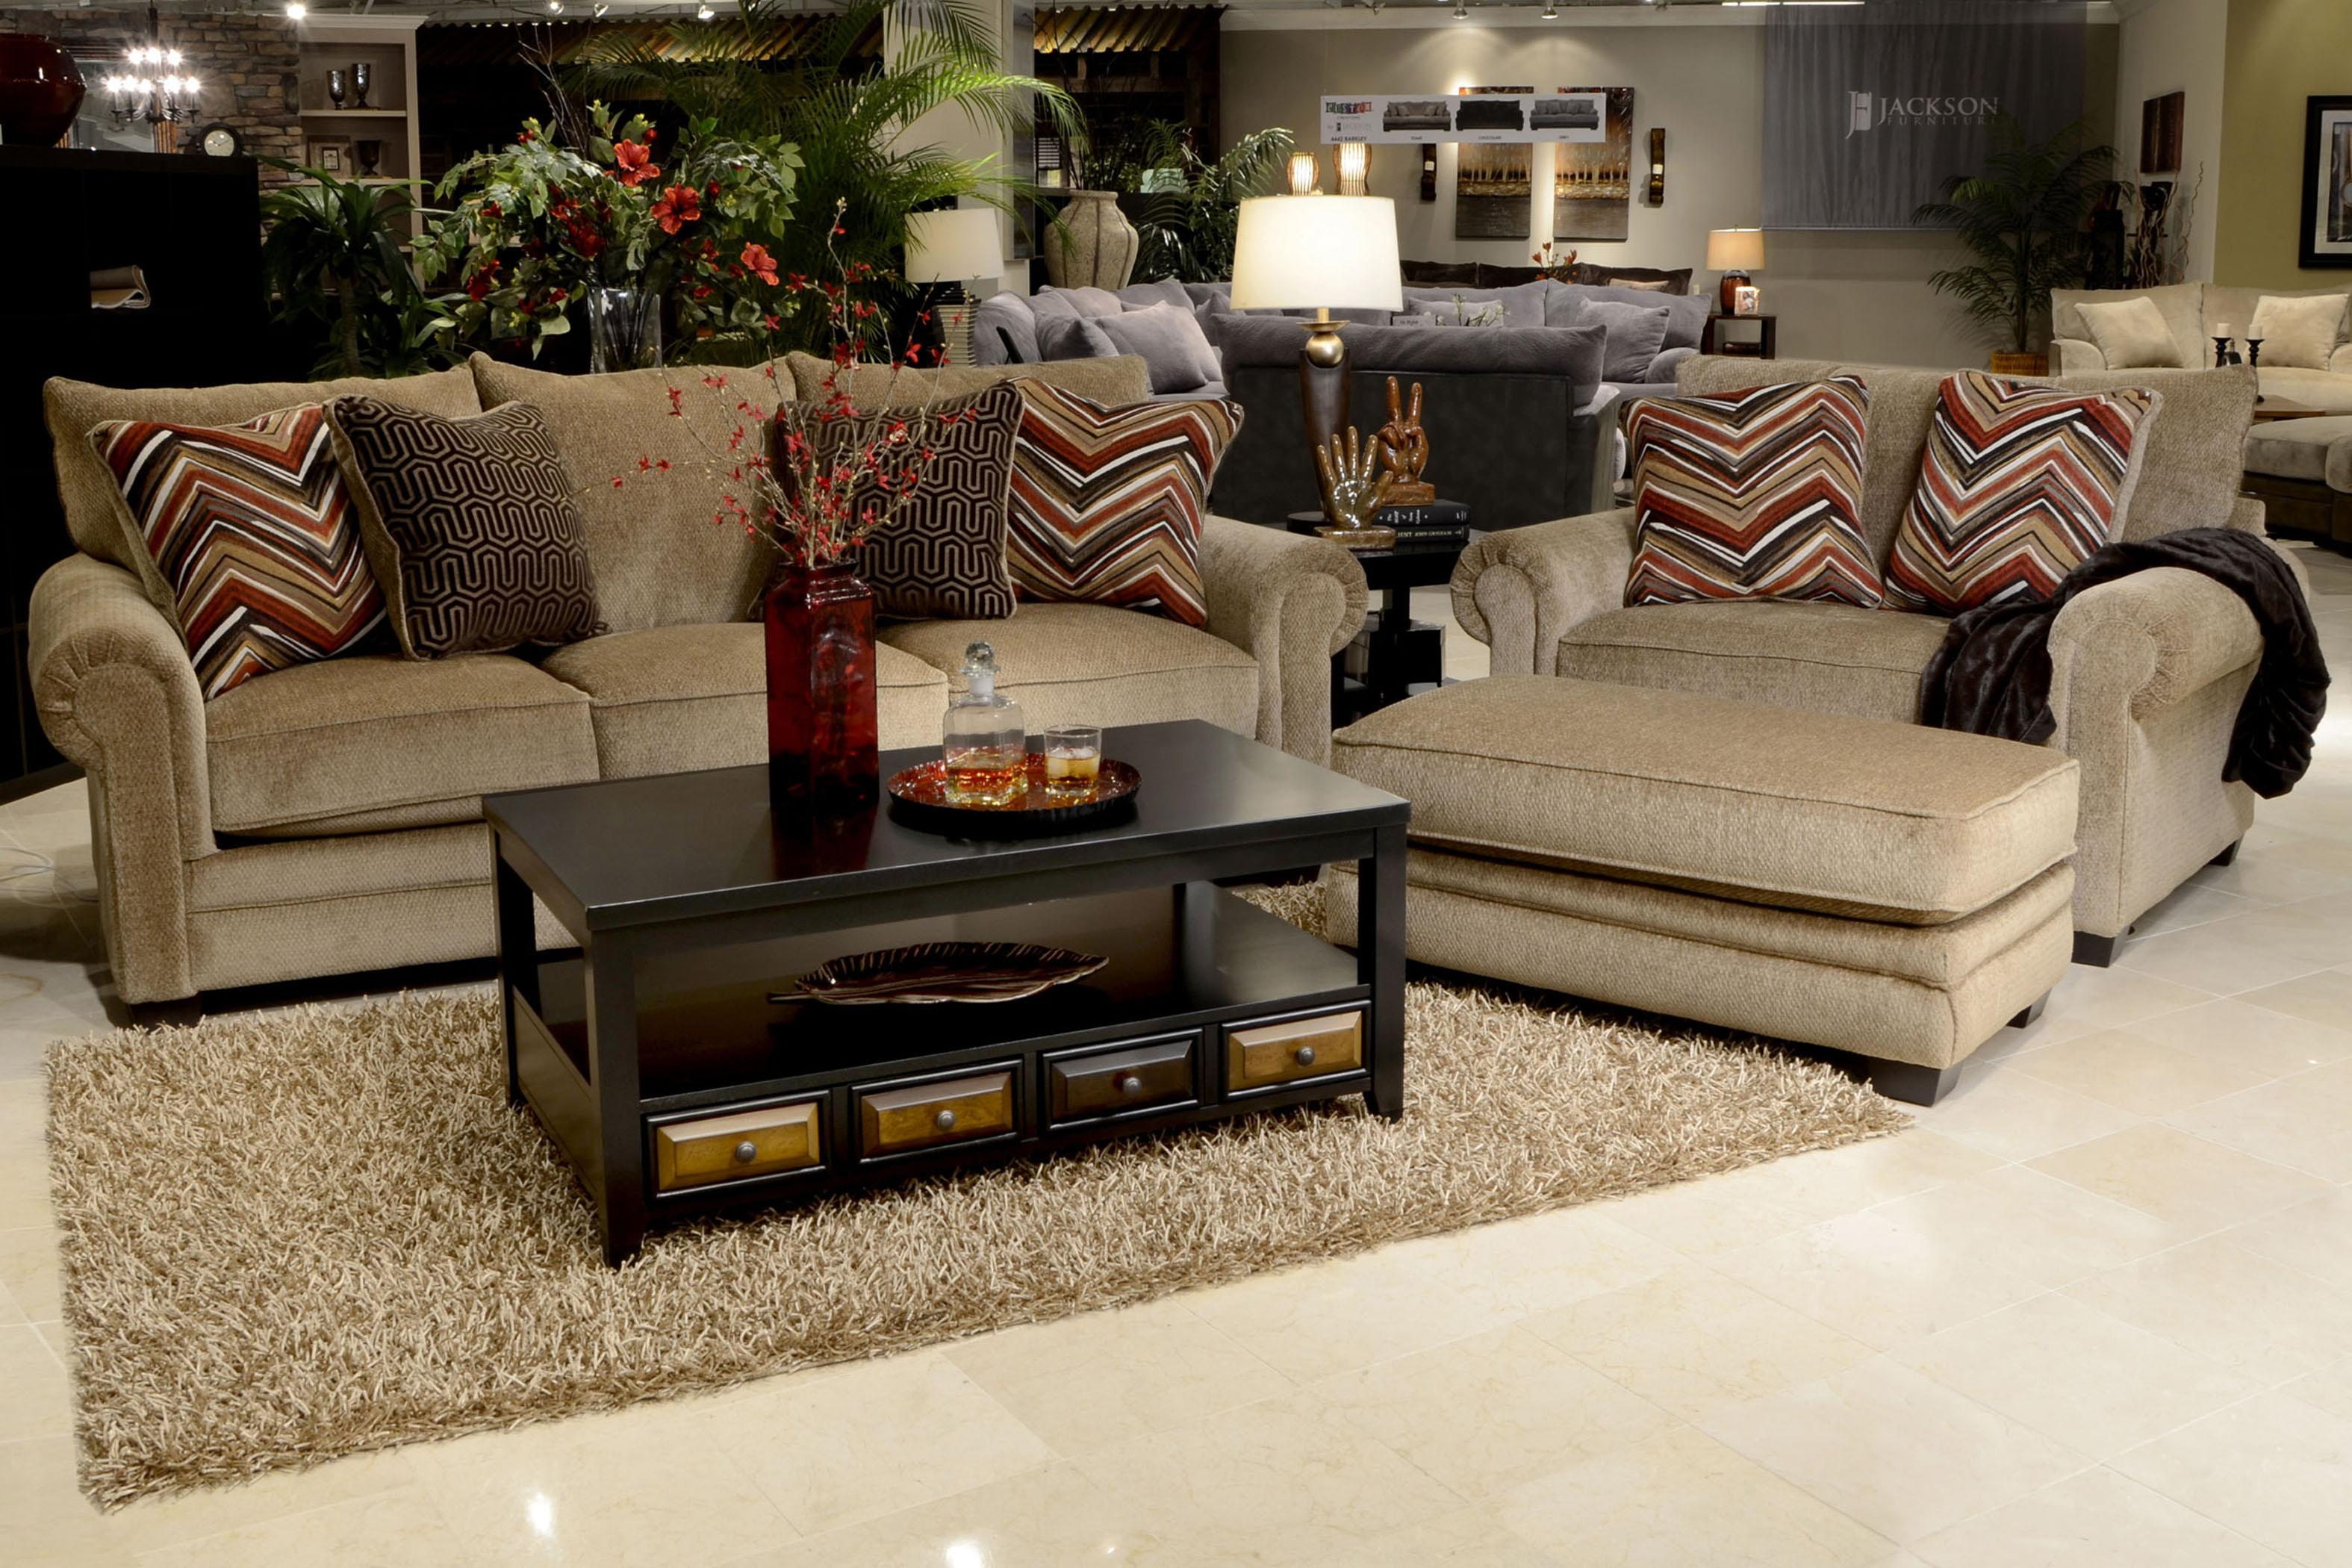 Merveilleux Jackson Furniture Anniston Upholstered Ottoman | Wayside Furniture |  Ottomans